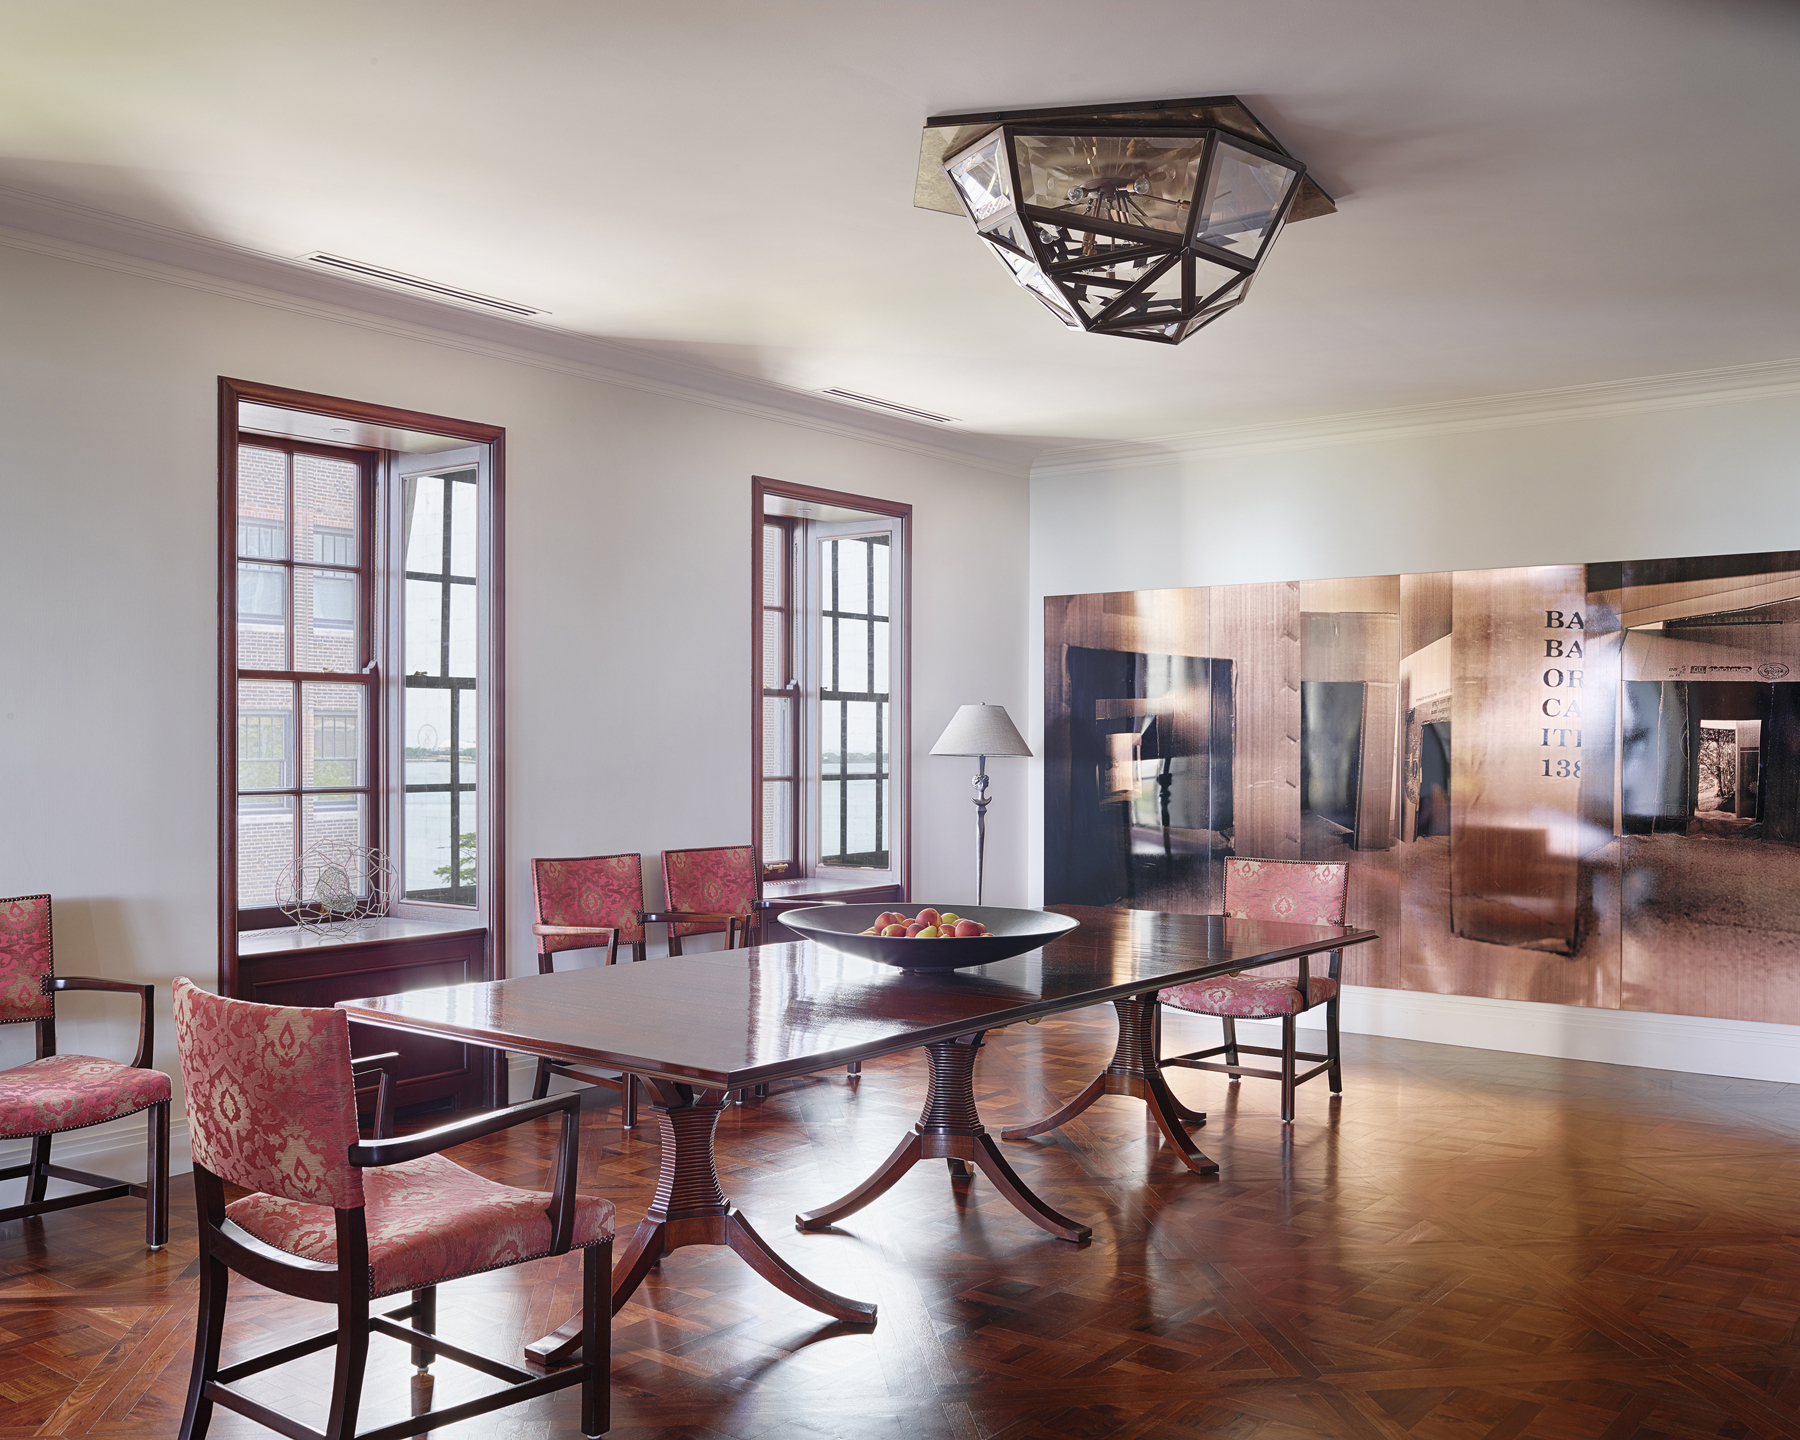 A corset dining table andDessin Fournir chairs complemented by parquet flooring by Alan Design Studio